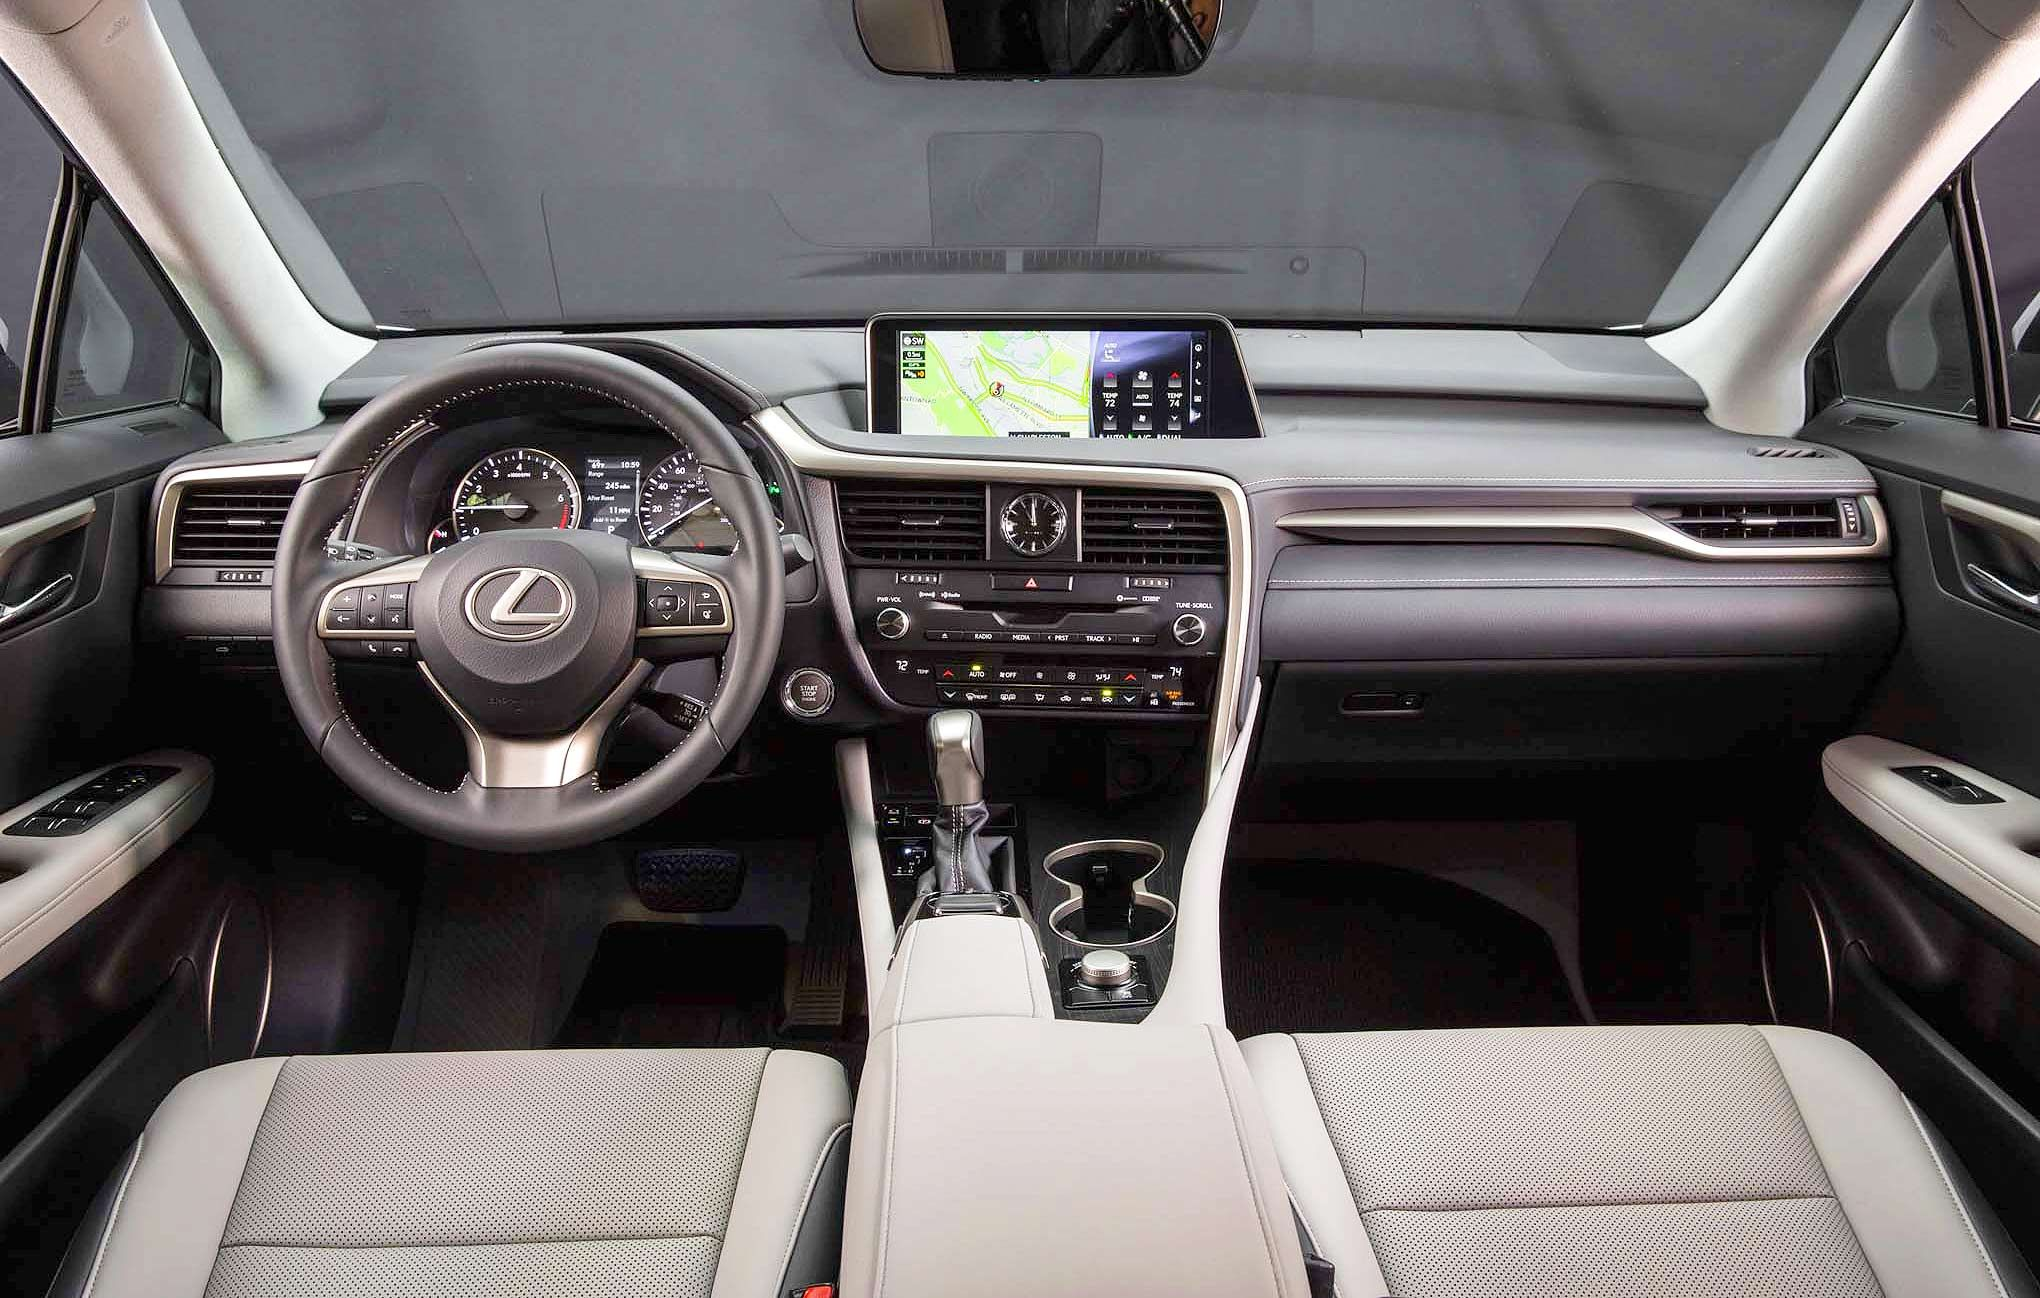 2019 Lexus Rc 200t Engine Specs Price And Release Date Lexus Rx 350 Lexus Lexus Rx 350 Interior